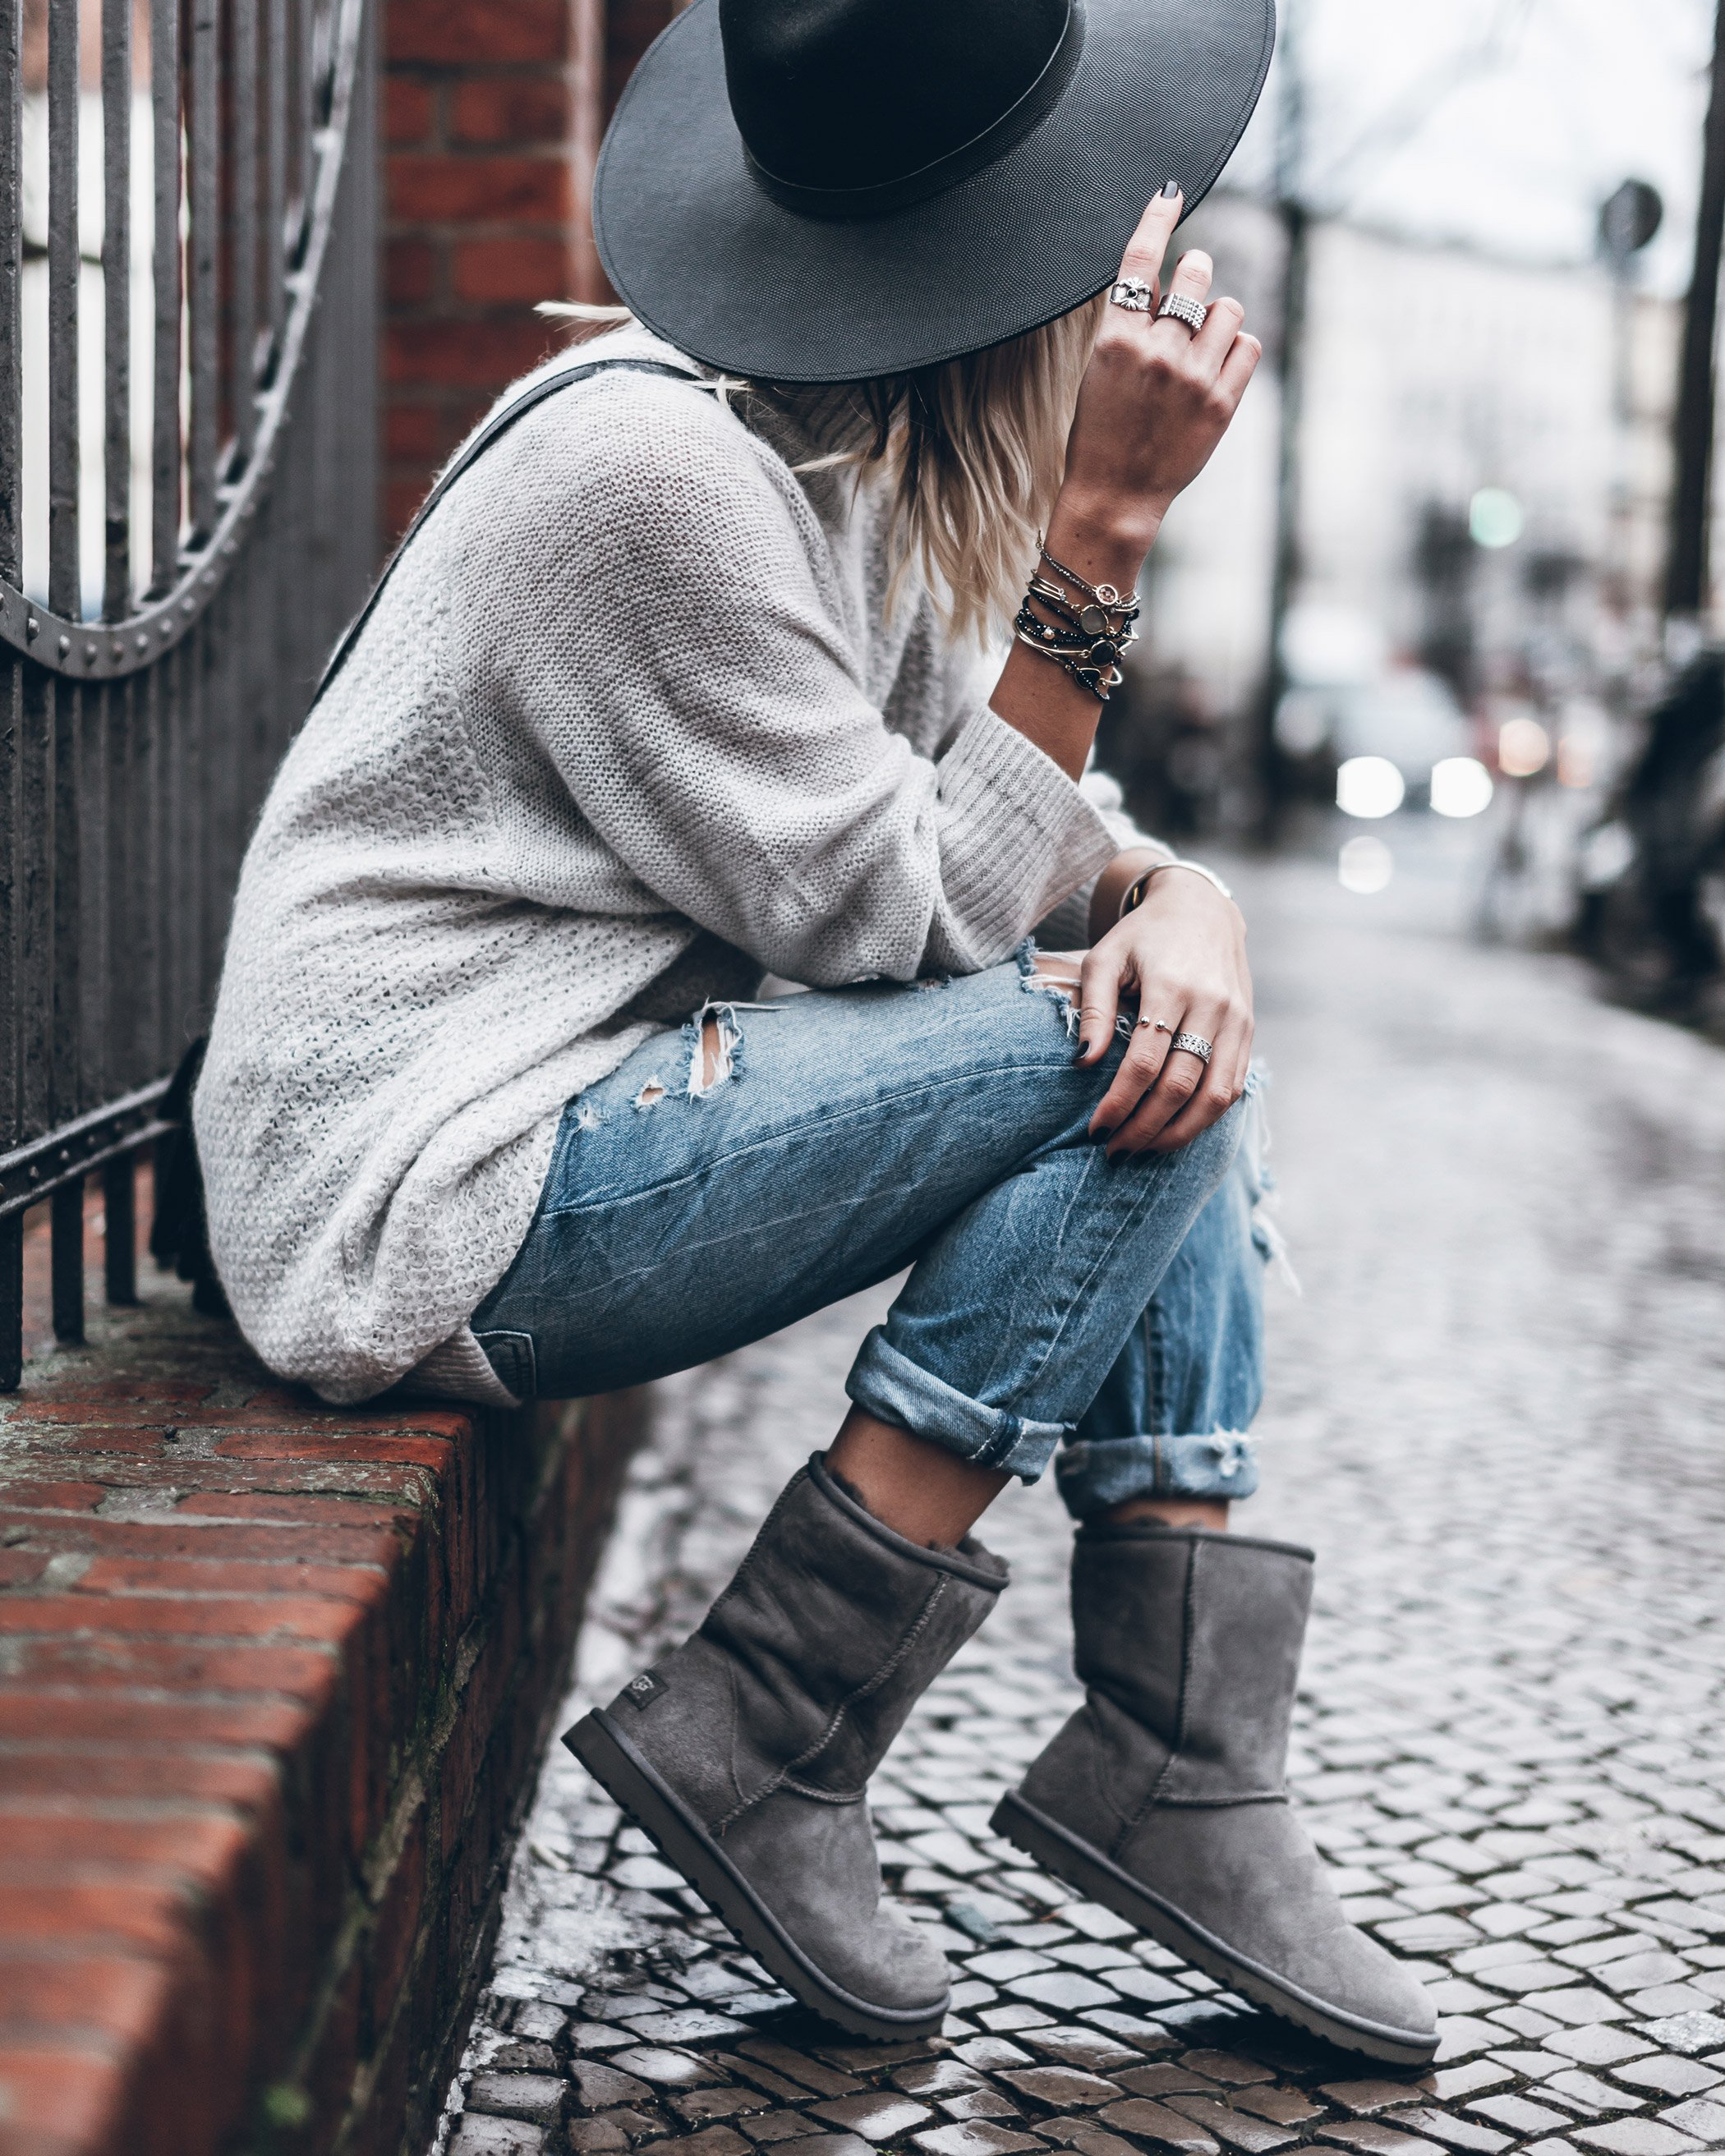 Do any shops in Berlin in Germany sell Uggs?